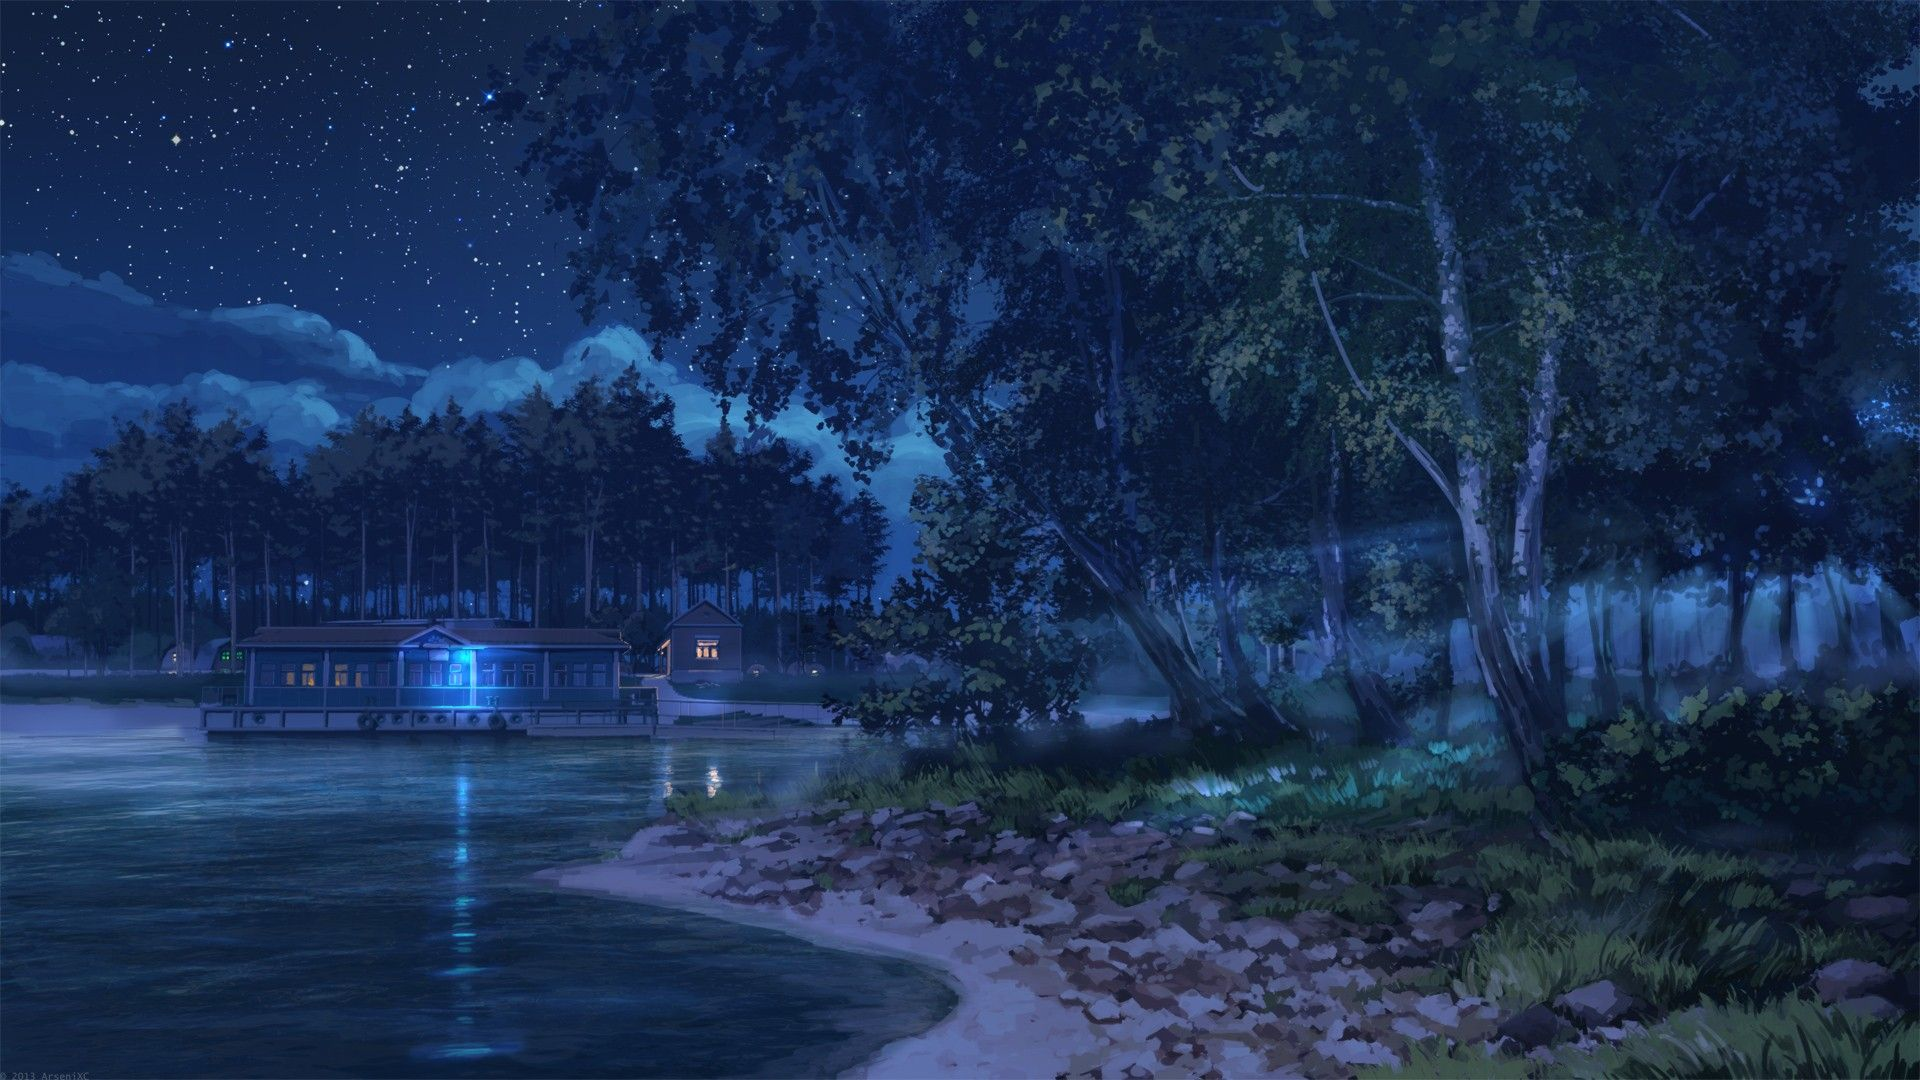 Dark Anime Scenery Wallpapers High Definition Dark Landscape Anime Scenery Wallpaper Anime Scenery